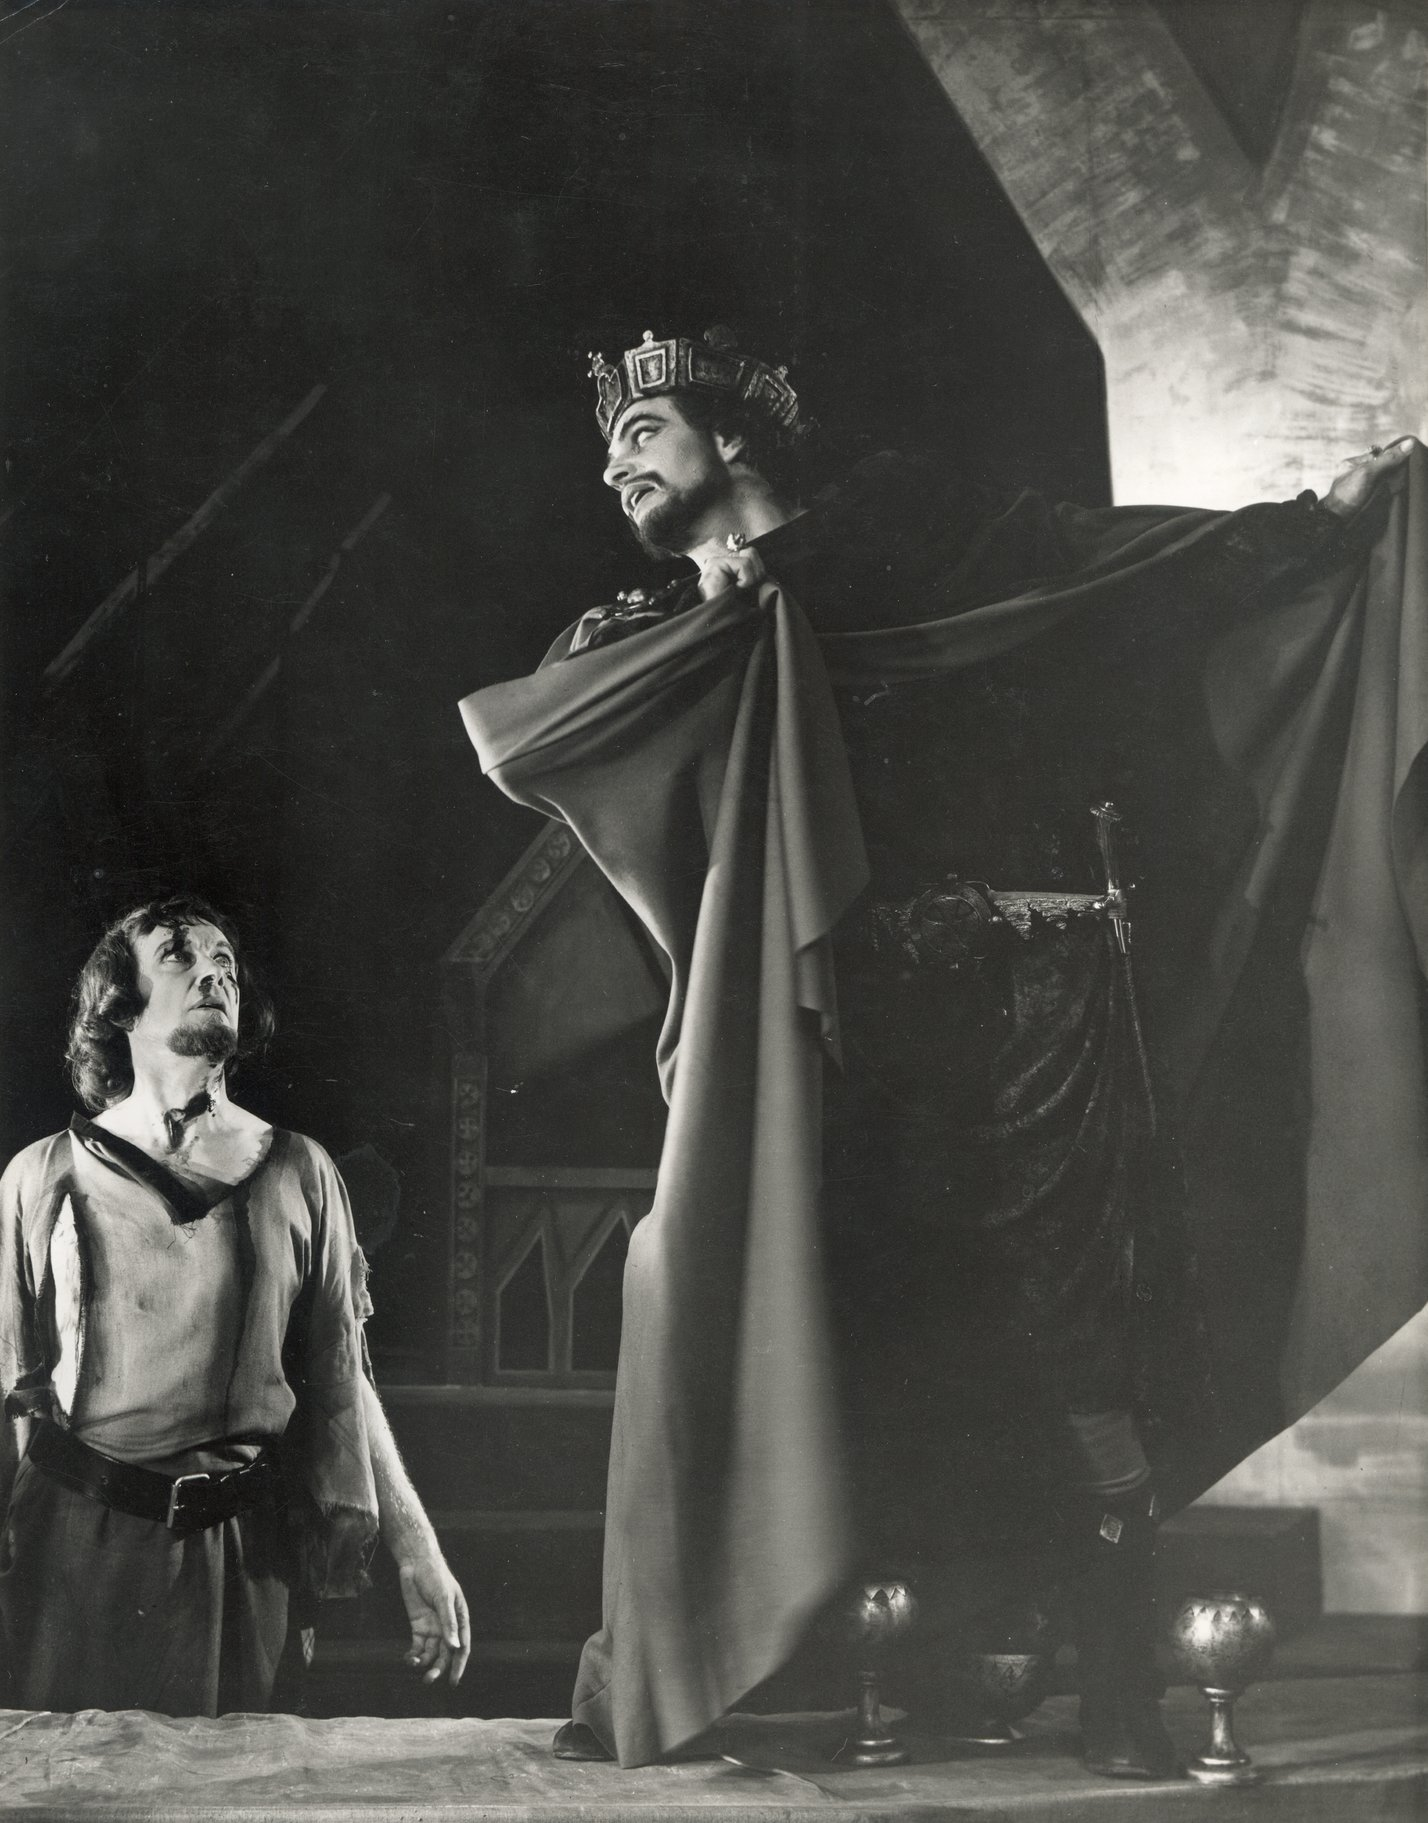 Macbeth sees Banquo's ghost.